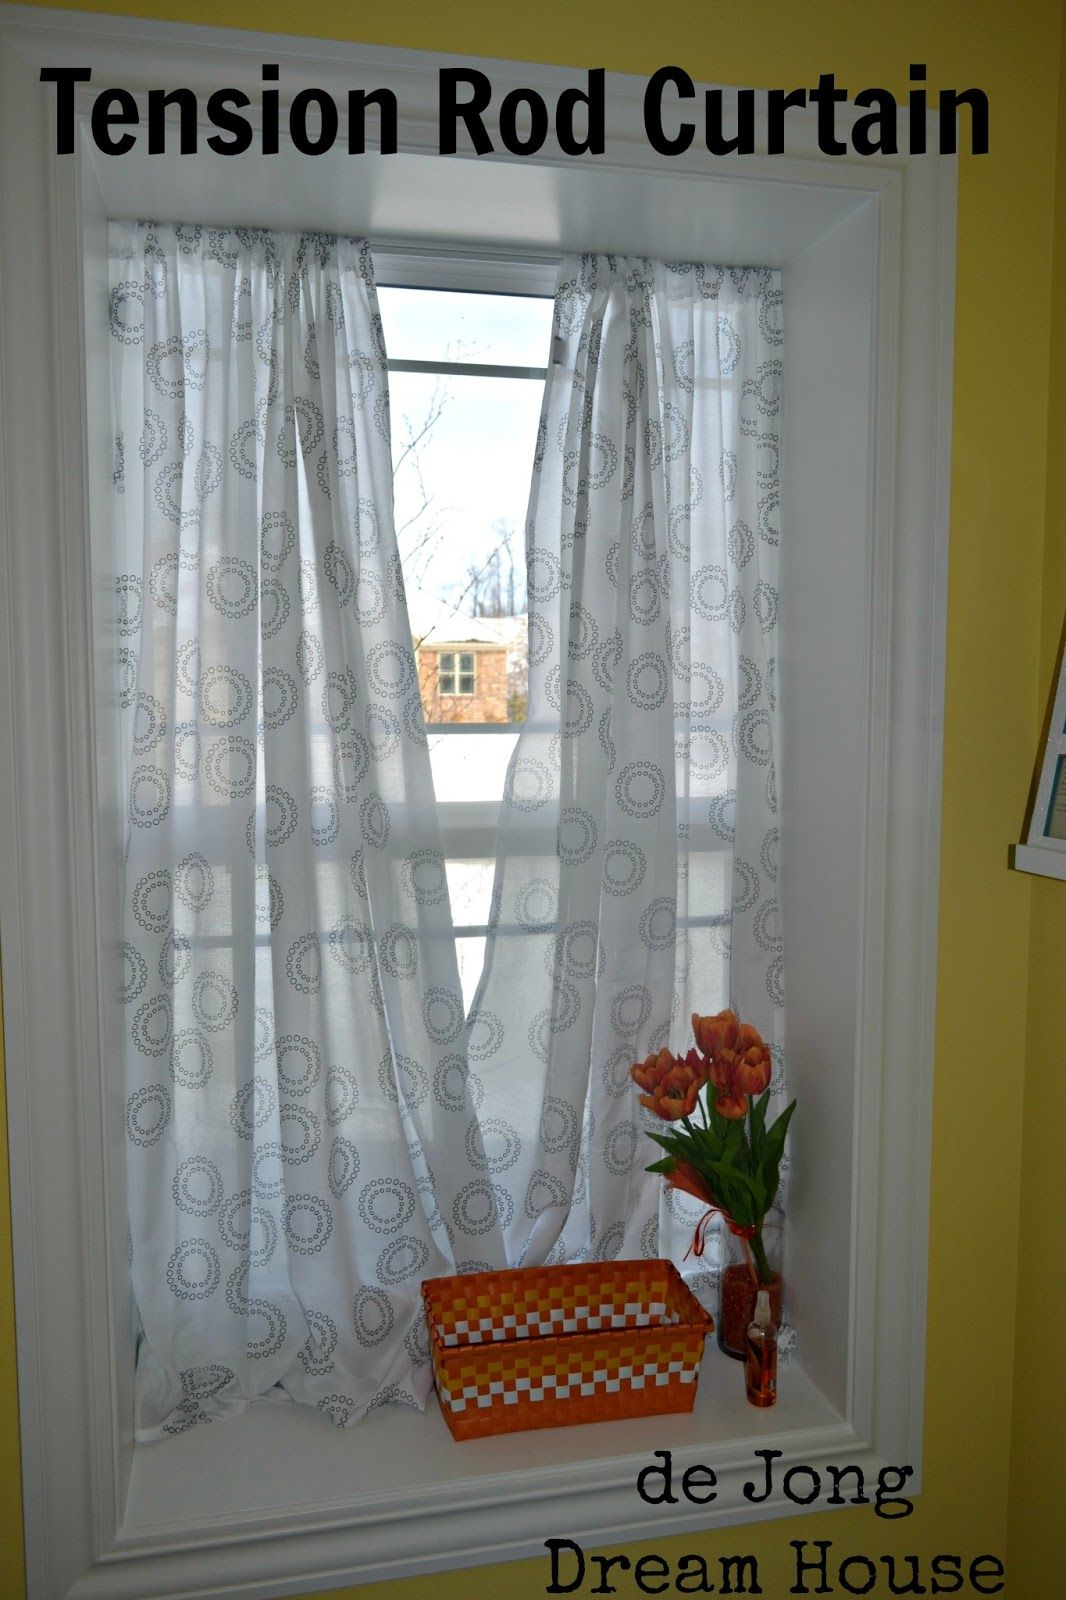 De Jong Dream House Uses For Tension Rods Tension Rod Curtains Curtains Stylish Curtains